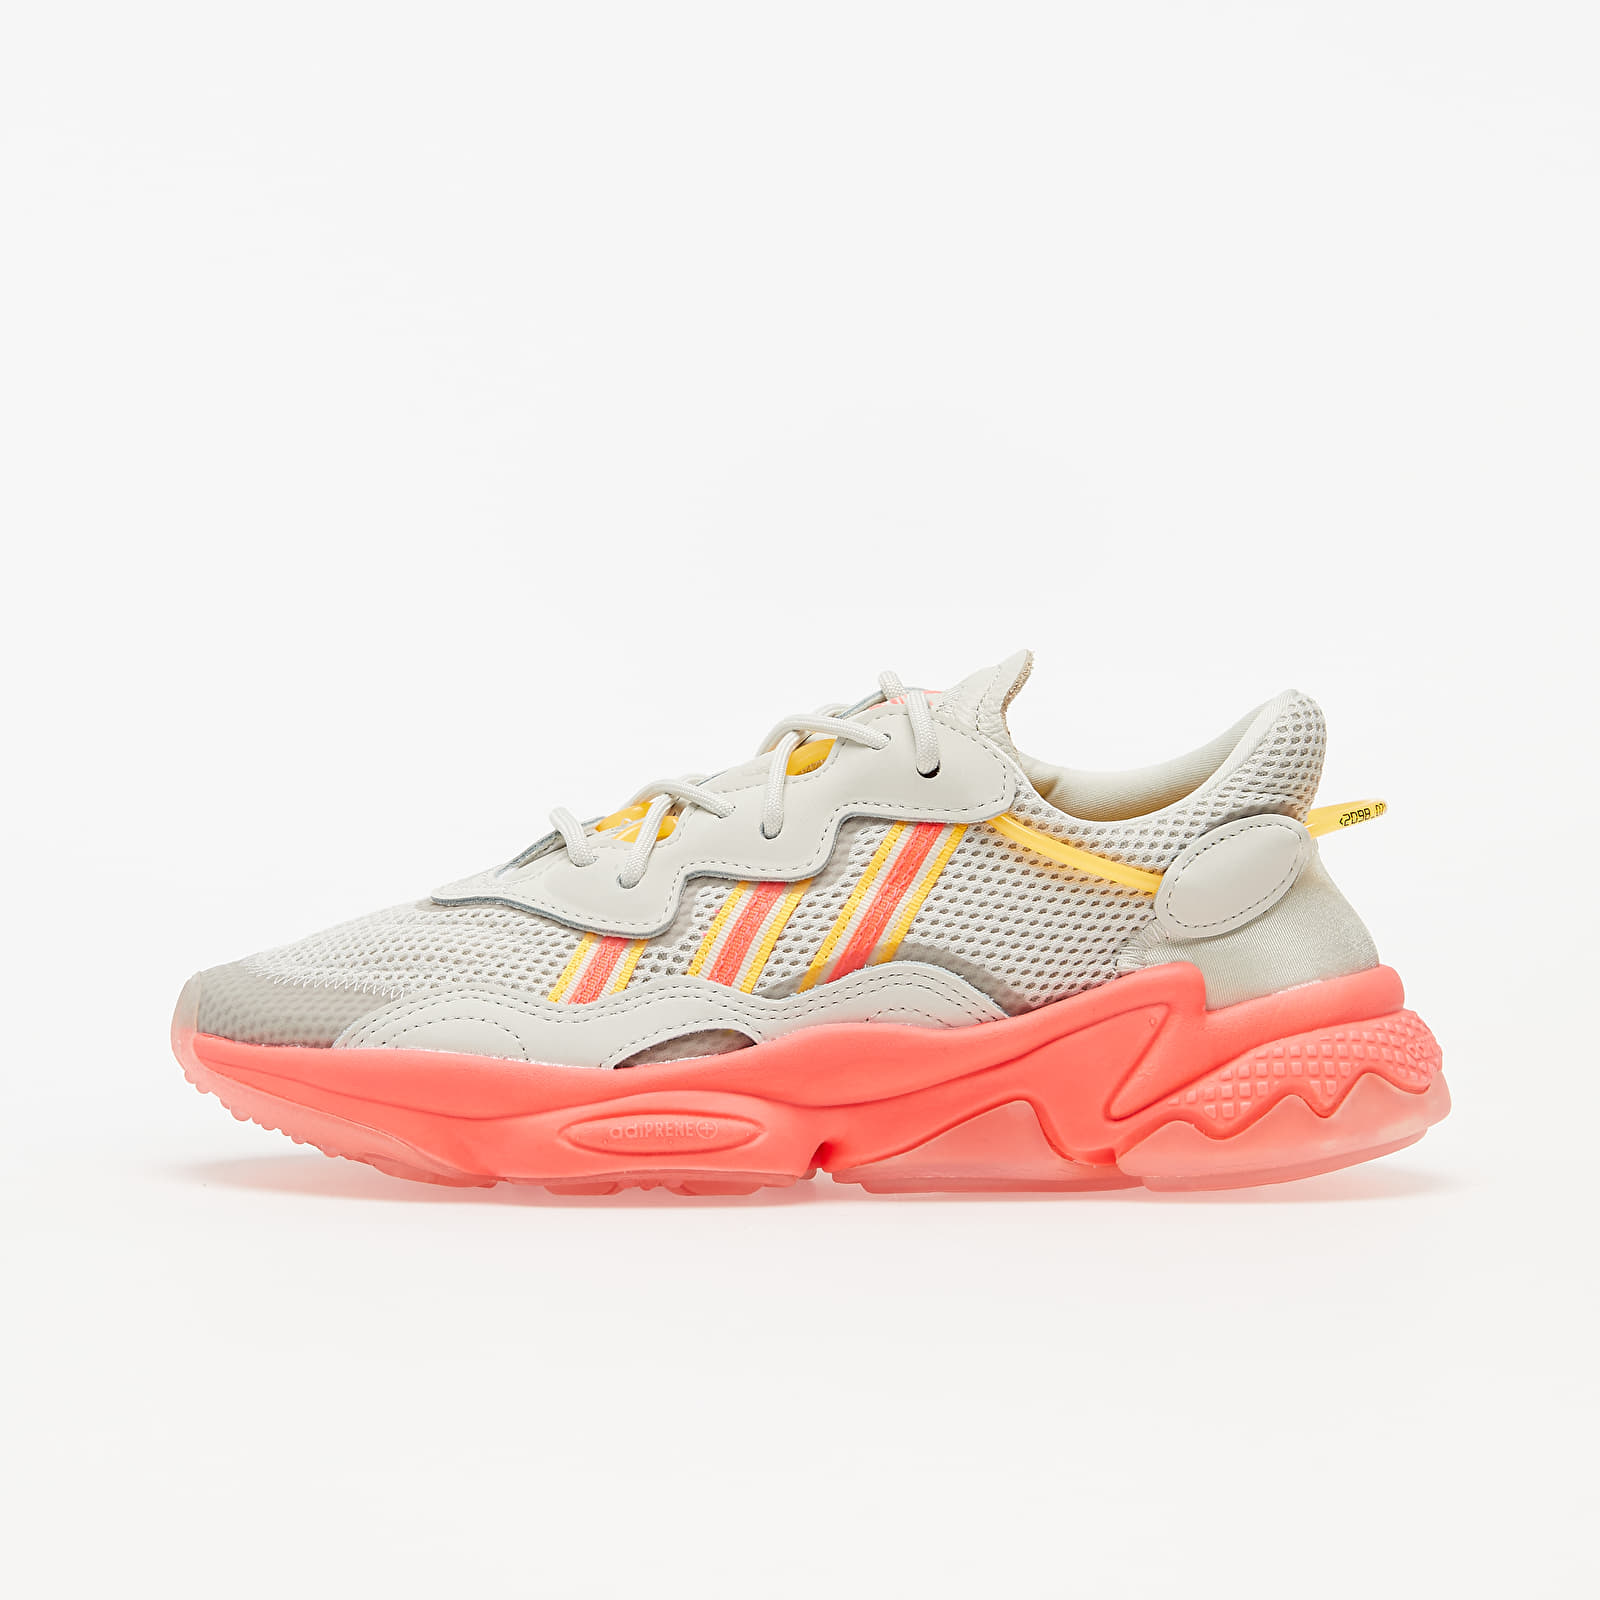 adidas Ozweego W Talc/ Signature Pink/ Solid Gold EUR 38 2/3